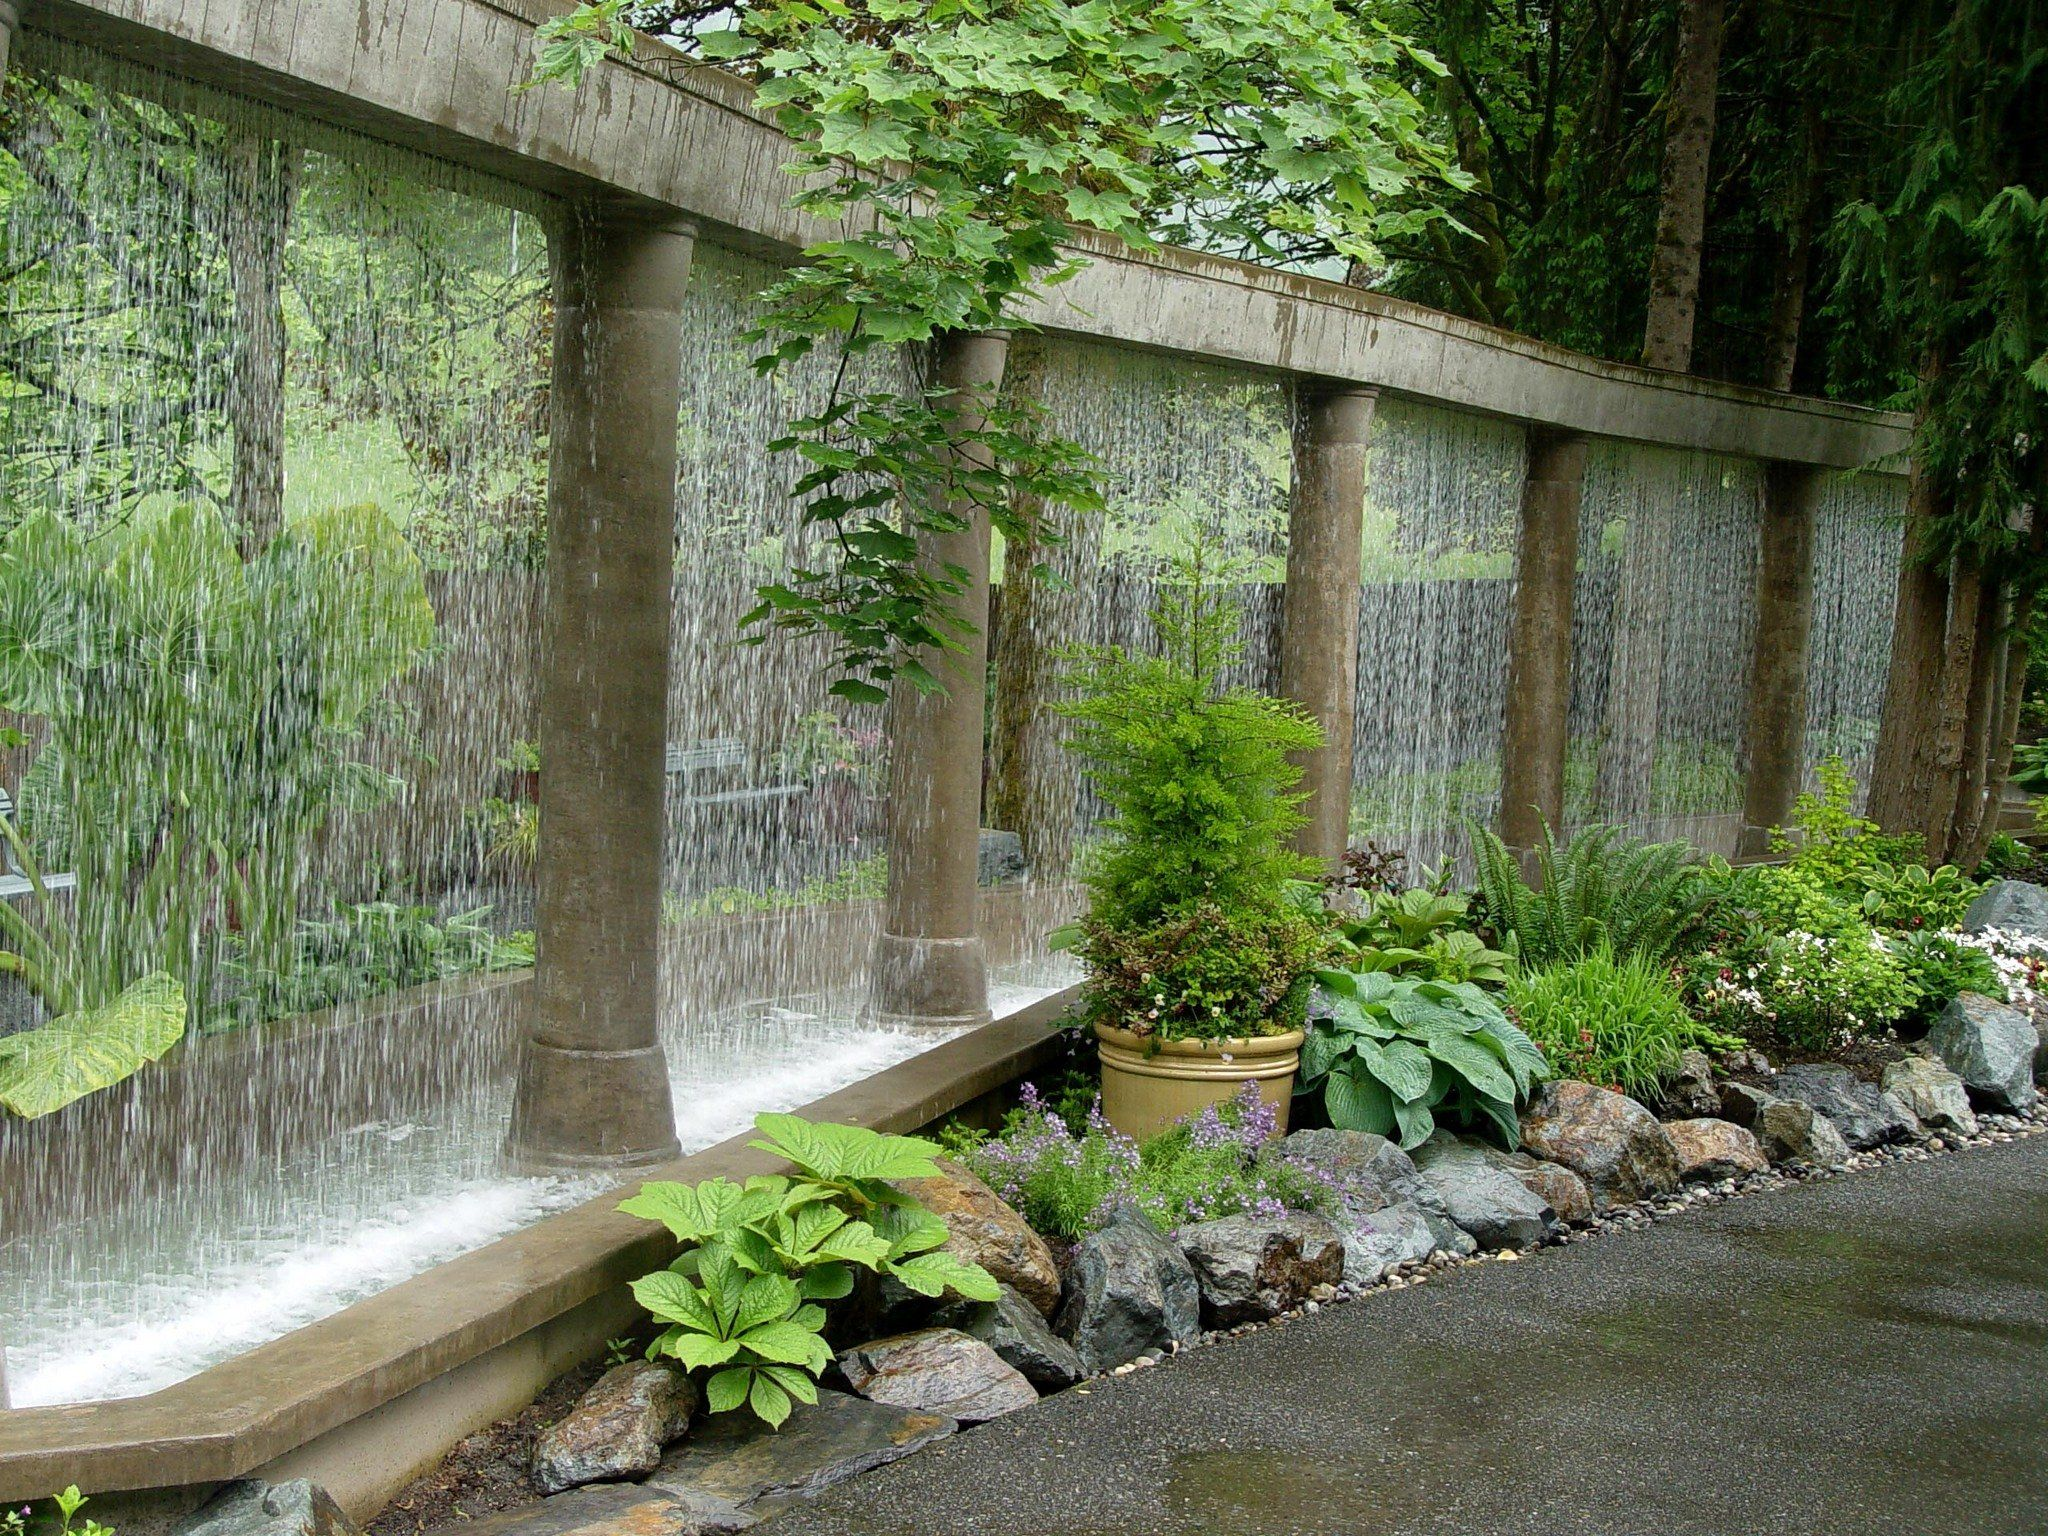 Water Garden Design waterfall garden | plant & they will come - garden design